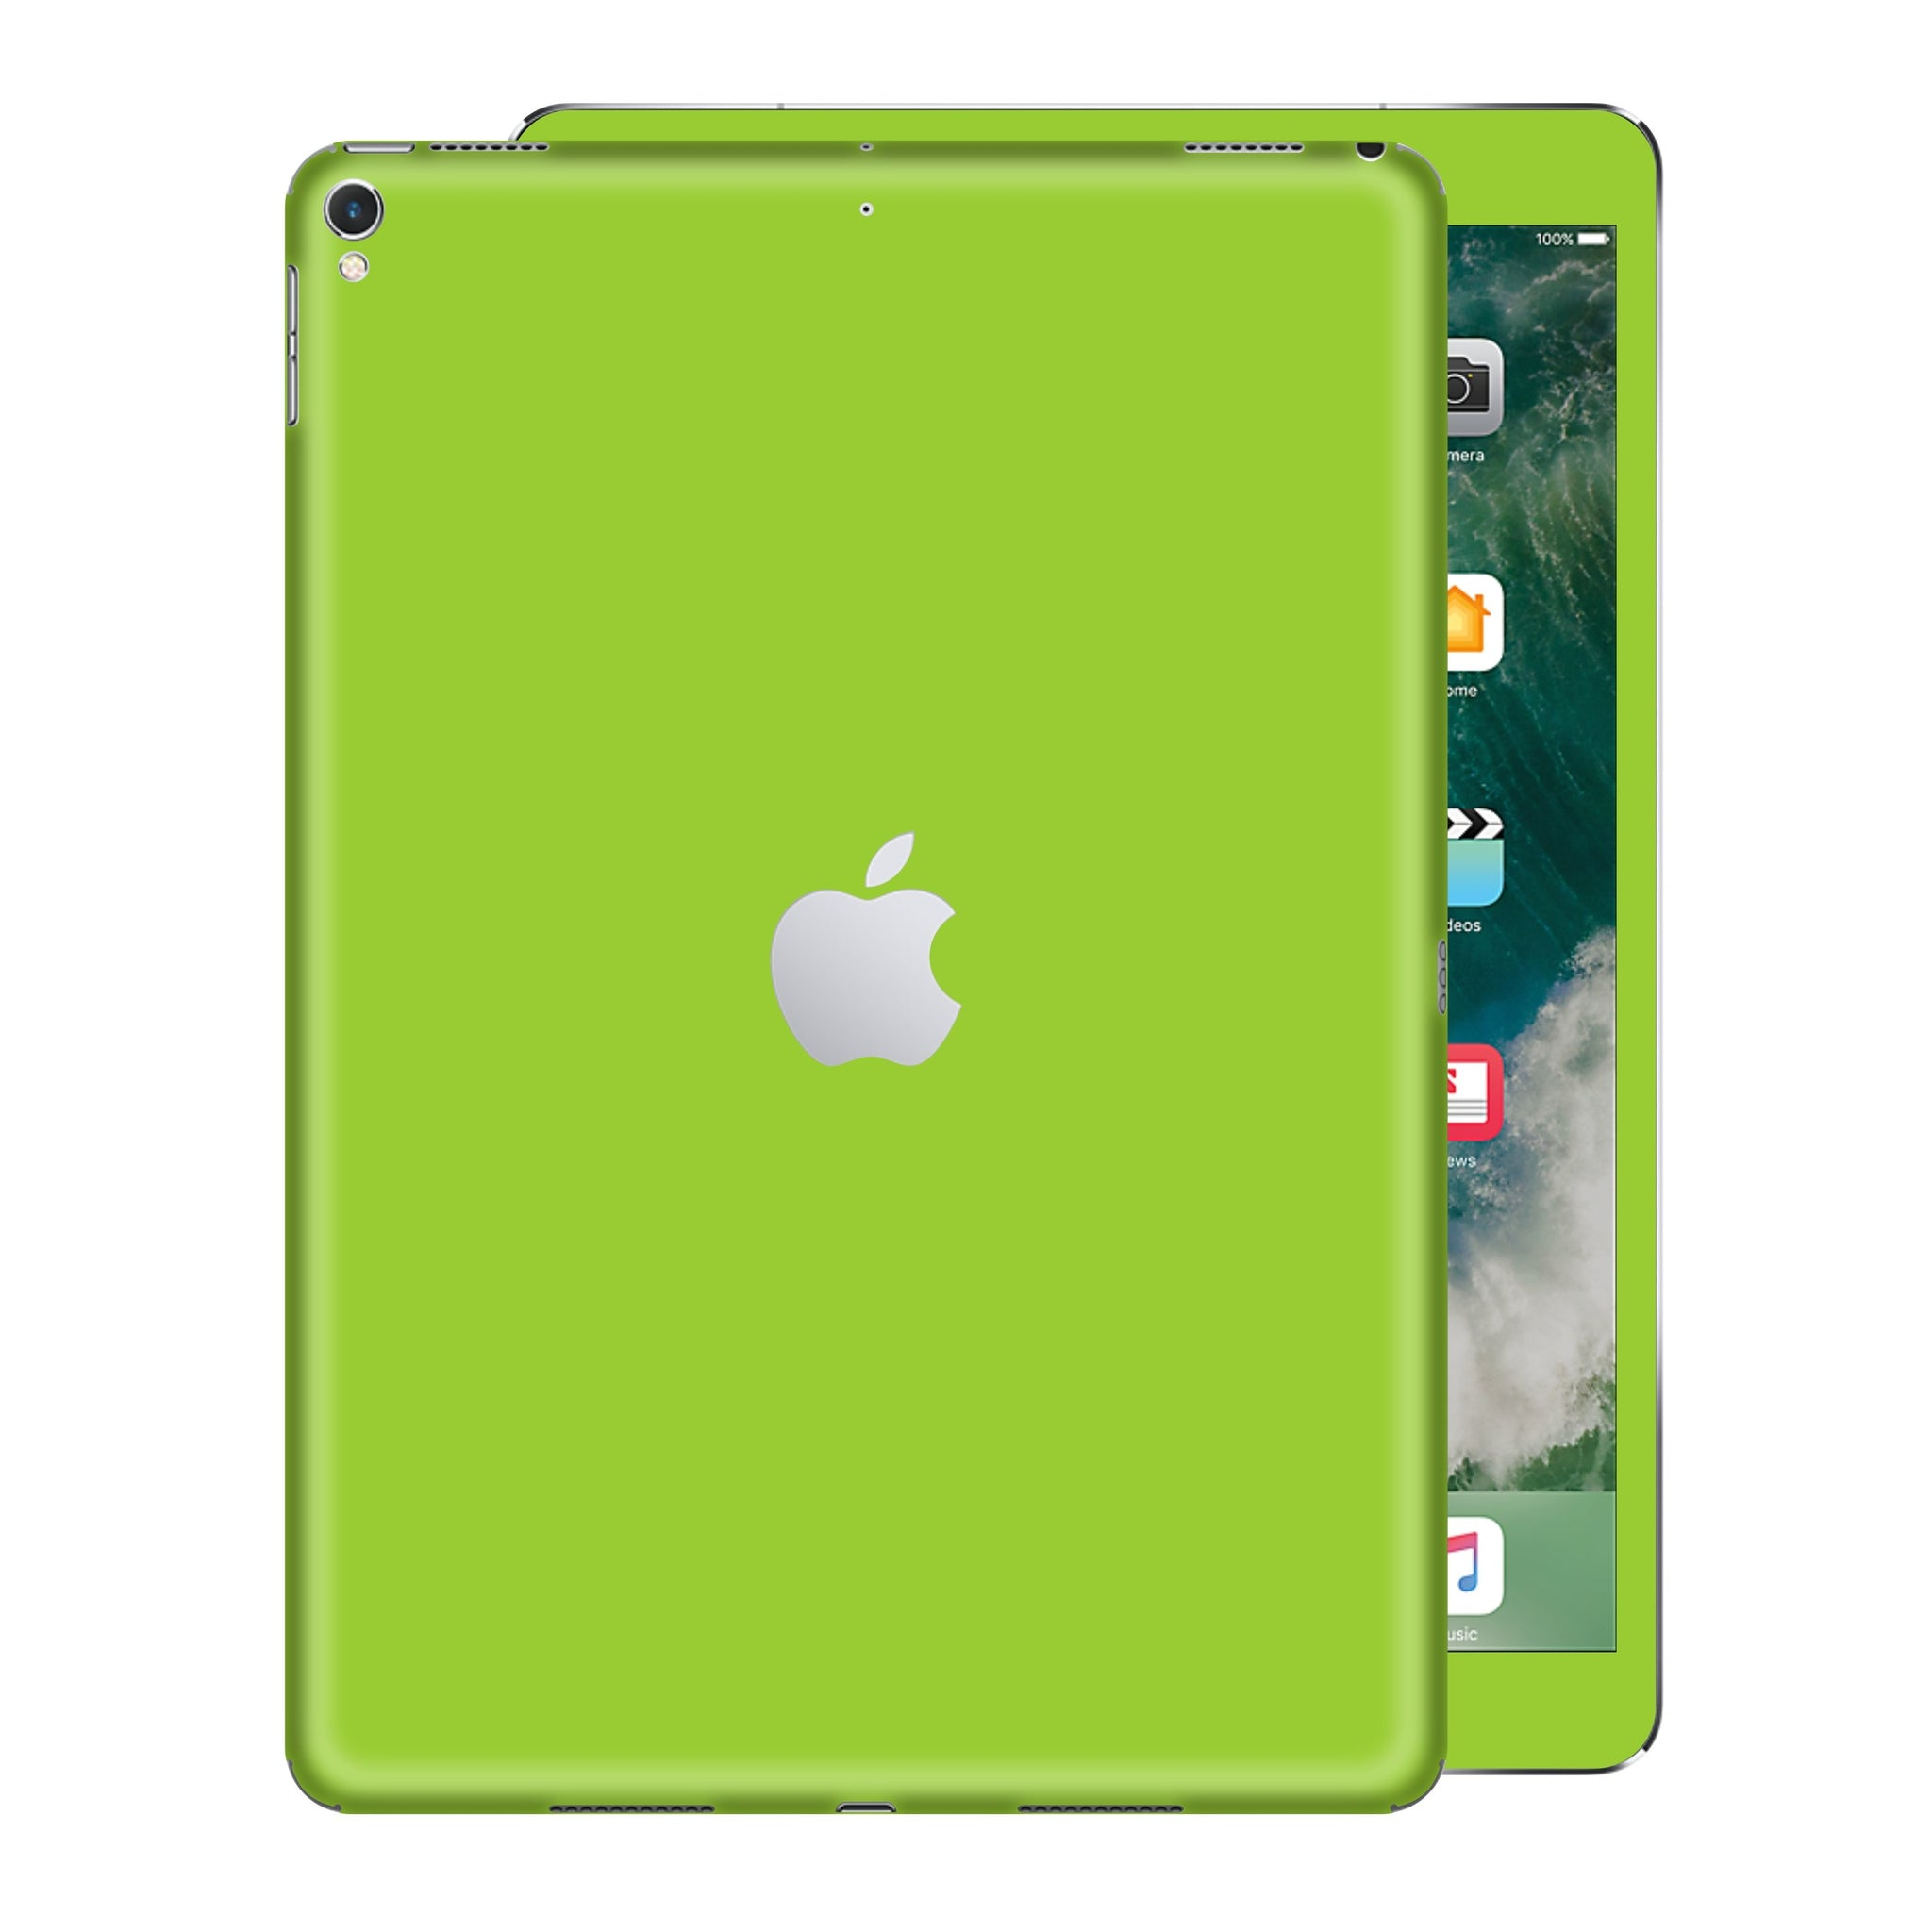 iPad PRO 12.9 inch 2017 Matt Matte Green Skin Wrap Sticker Decal Cover Protector by EasySkinz